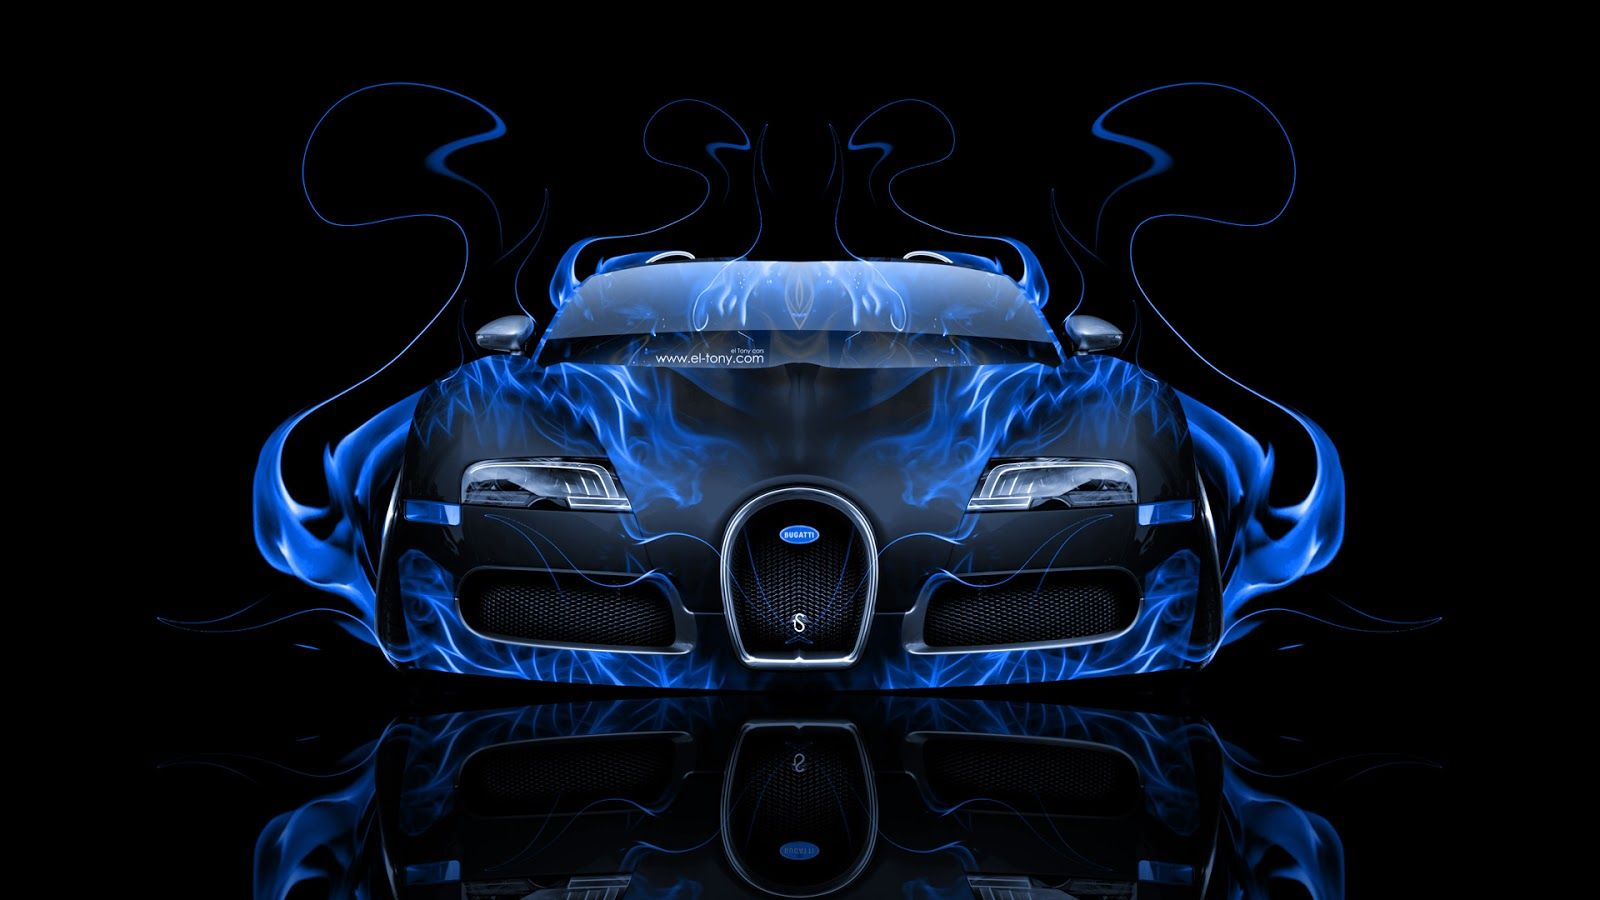 Cool Bugatti Wallpaper Hd Resolution With Images Bugatti